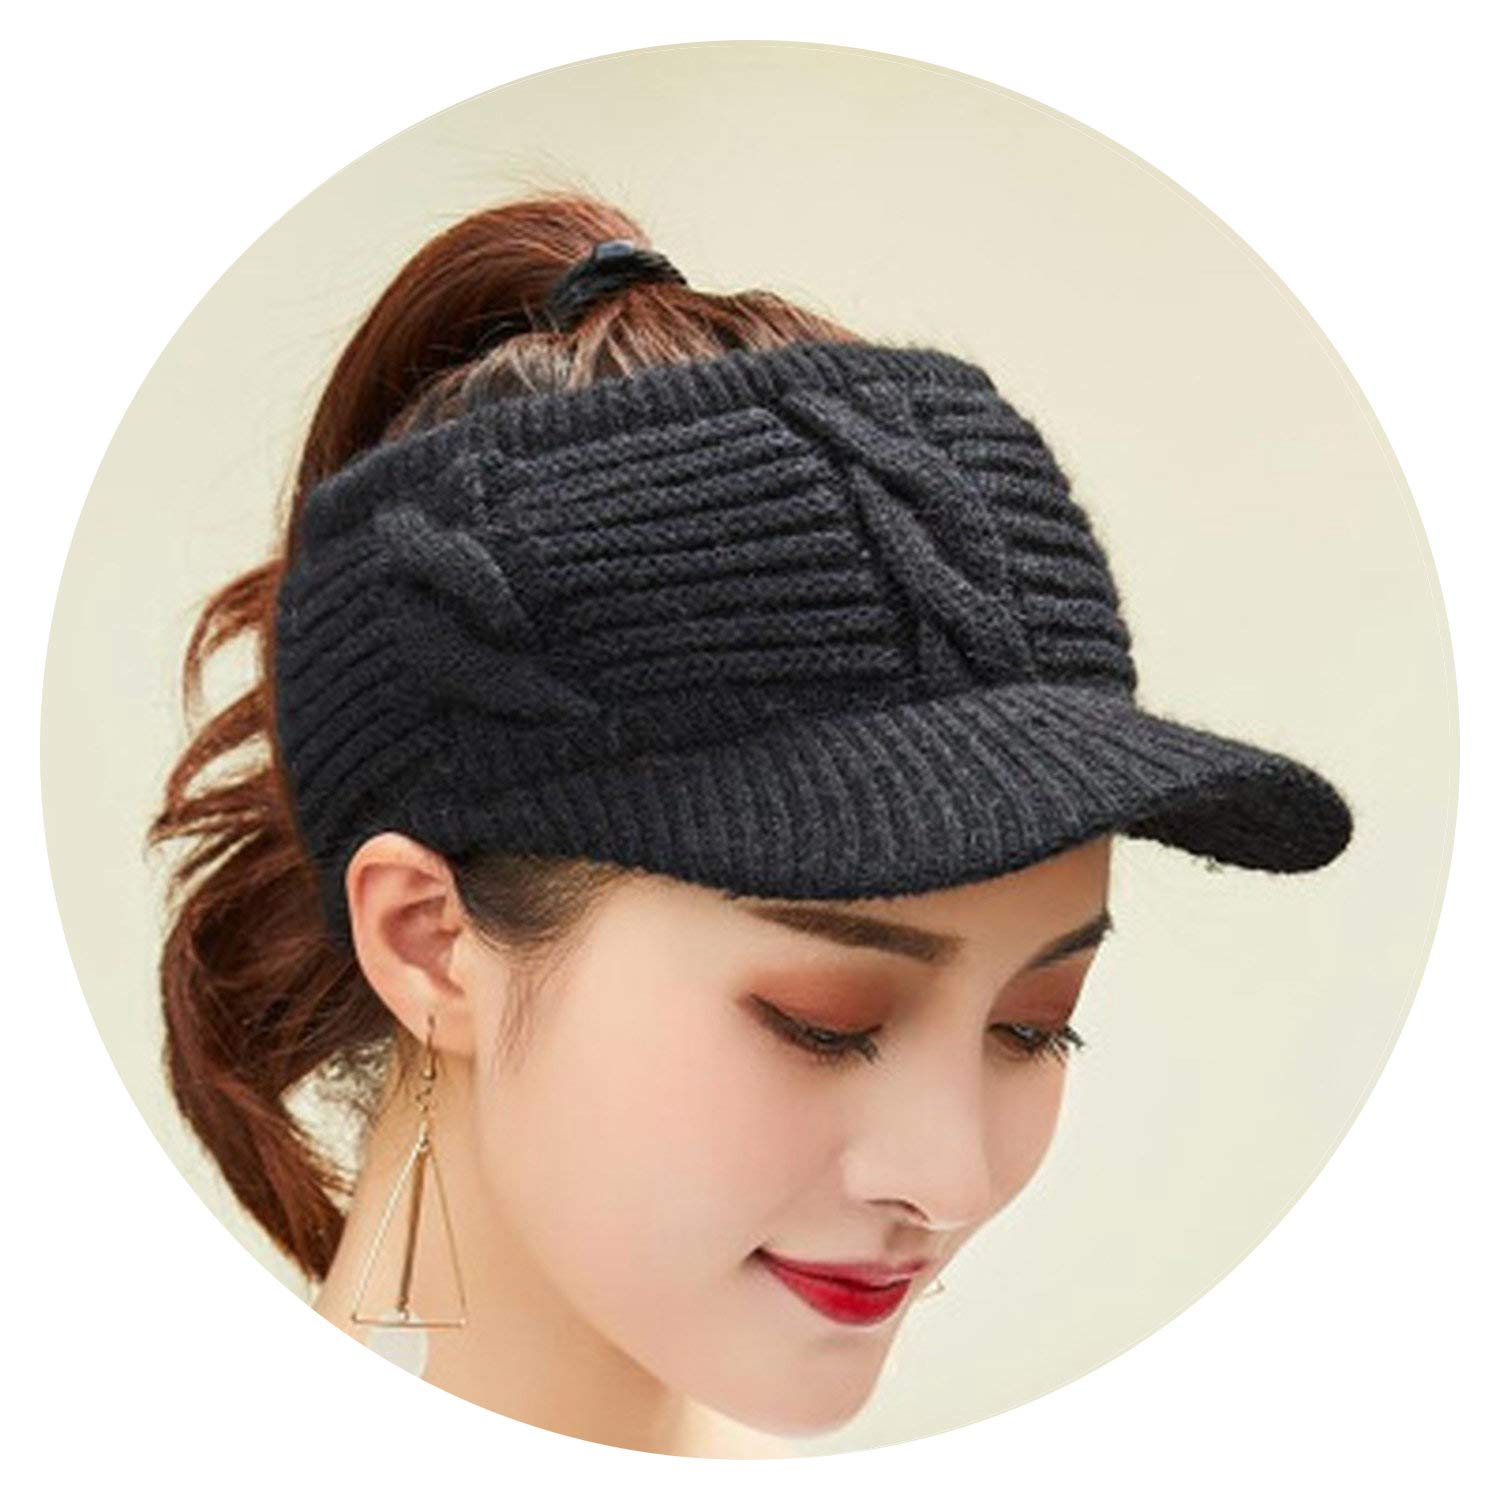 Adult Wool Knitted Horsetail Caps Winter Empty Top Hats for Women and Girl Skullies